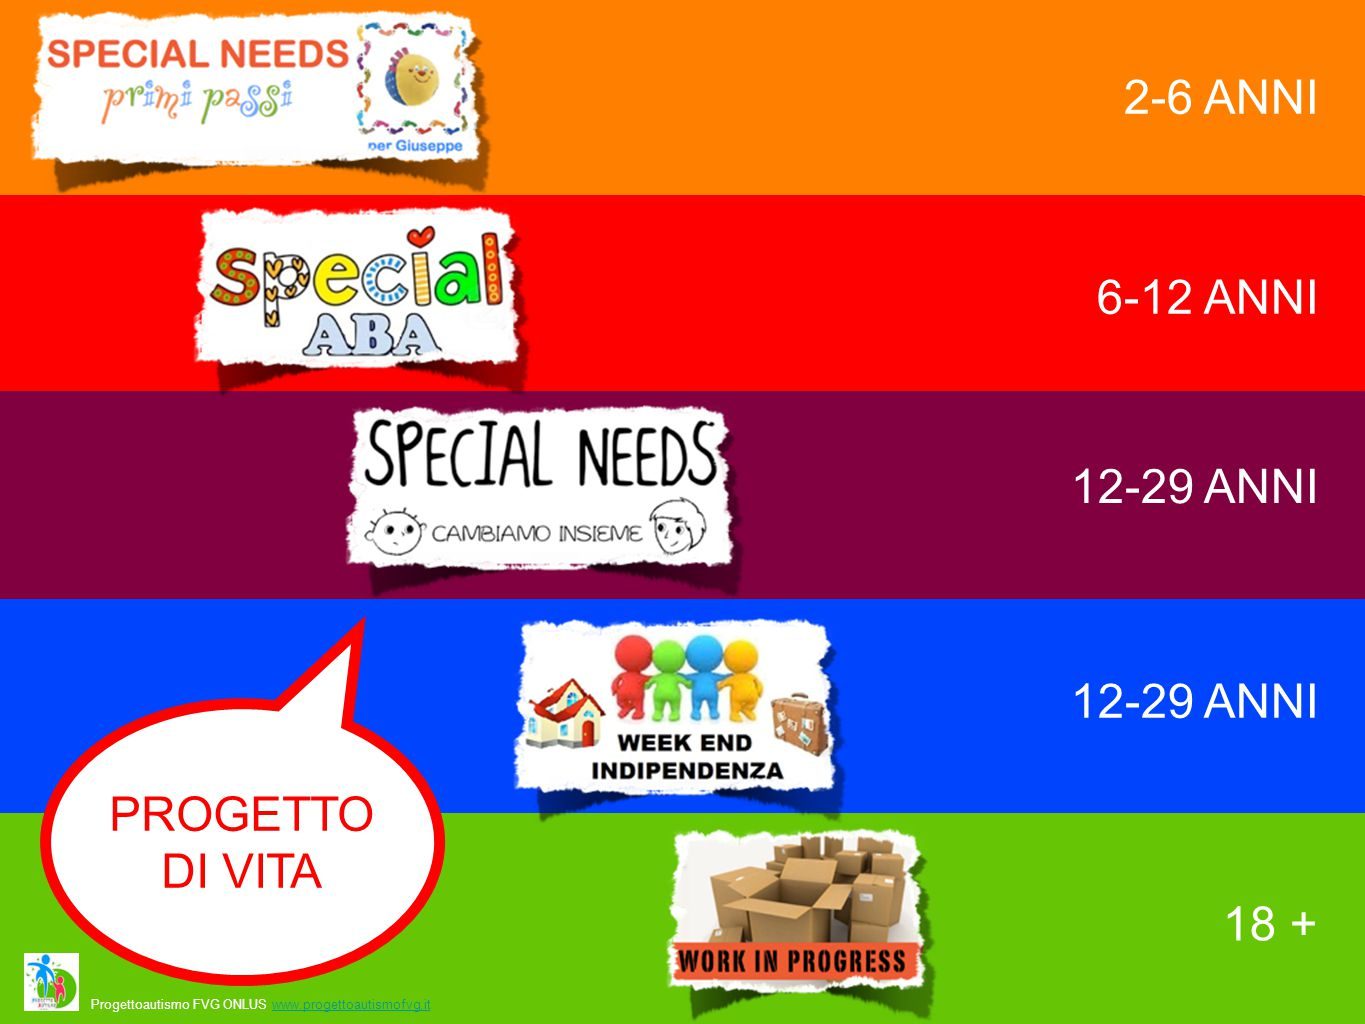 2-6 ANNI 6-12 ANNI 12-29 ANNI 18 + 12-29 ANNI PROGETTO DI VITA Progettoautismo FVG ONLUS www.progettoautismofvg.itwww.progettoautismofvg.it